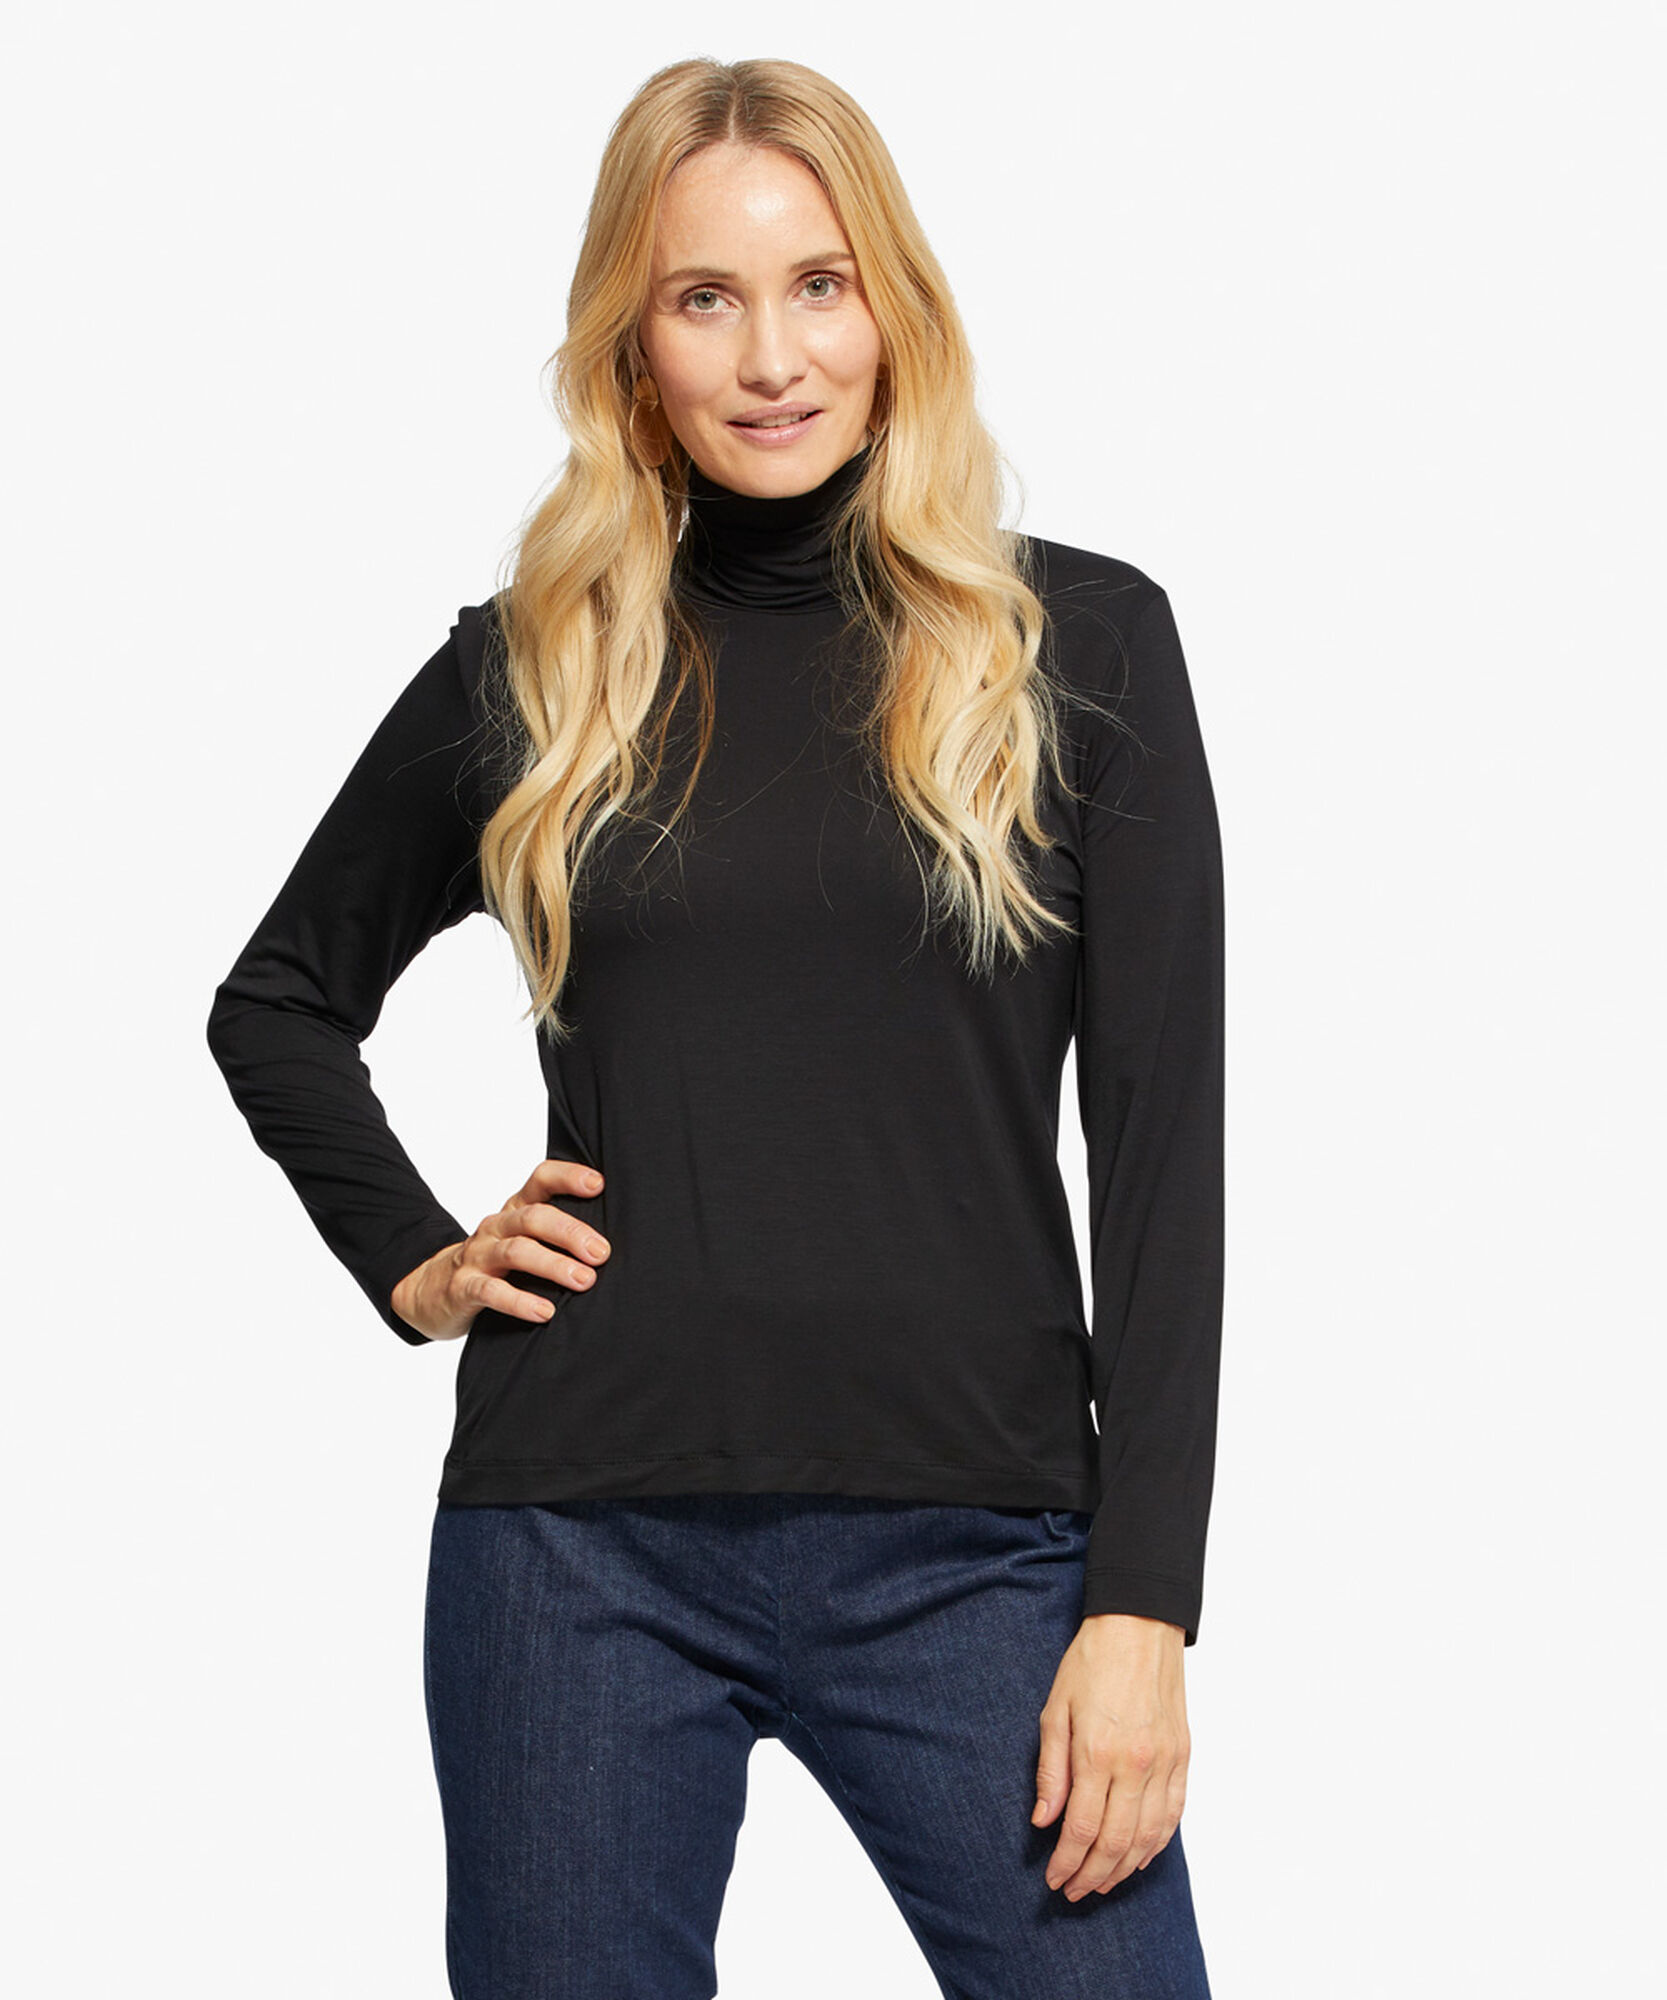 BRUNIS TOP, Black, hi-res